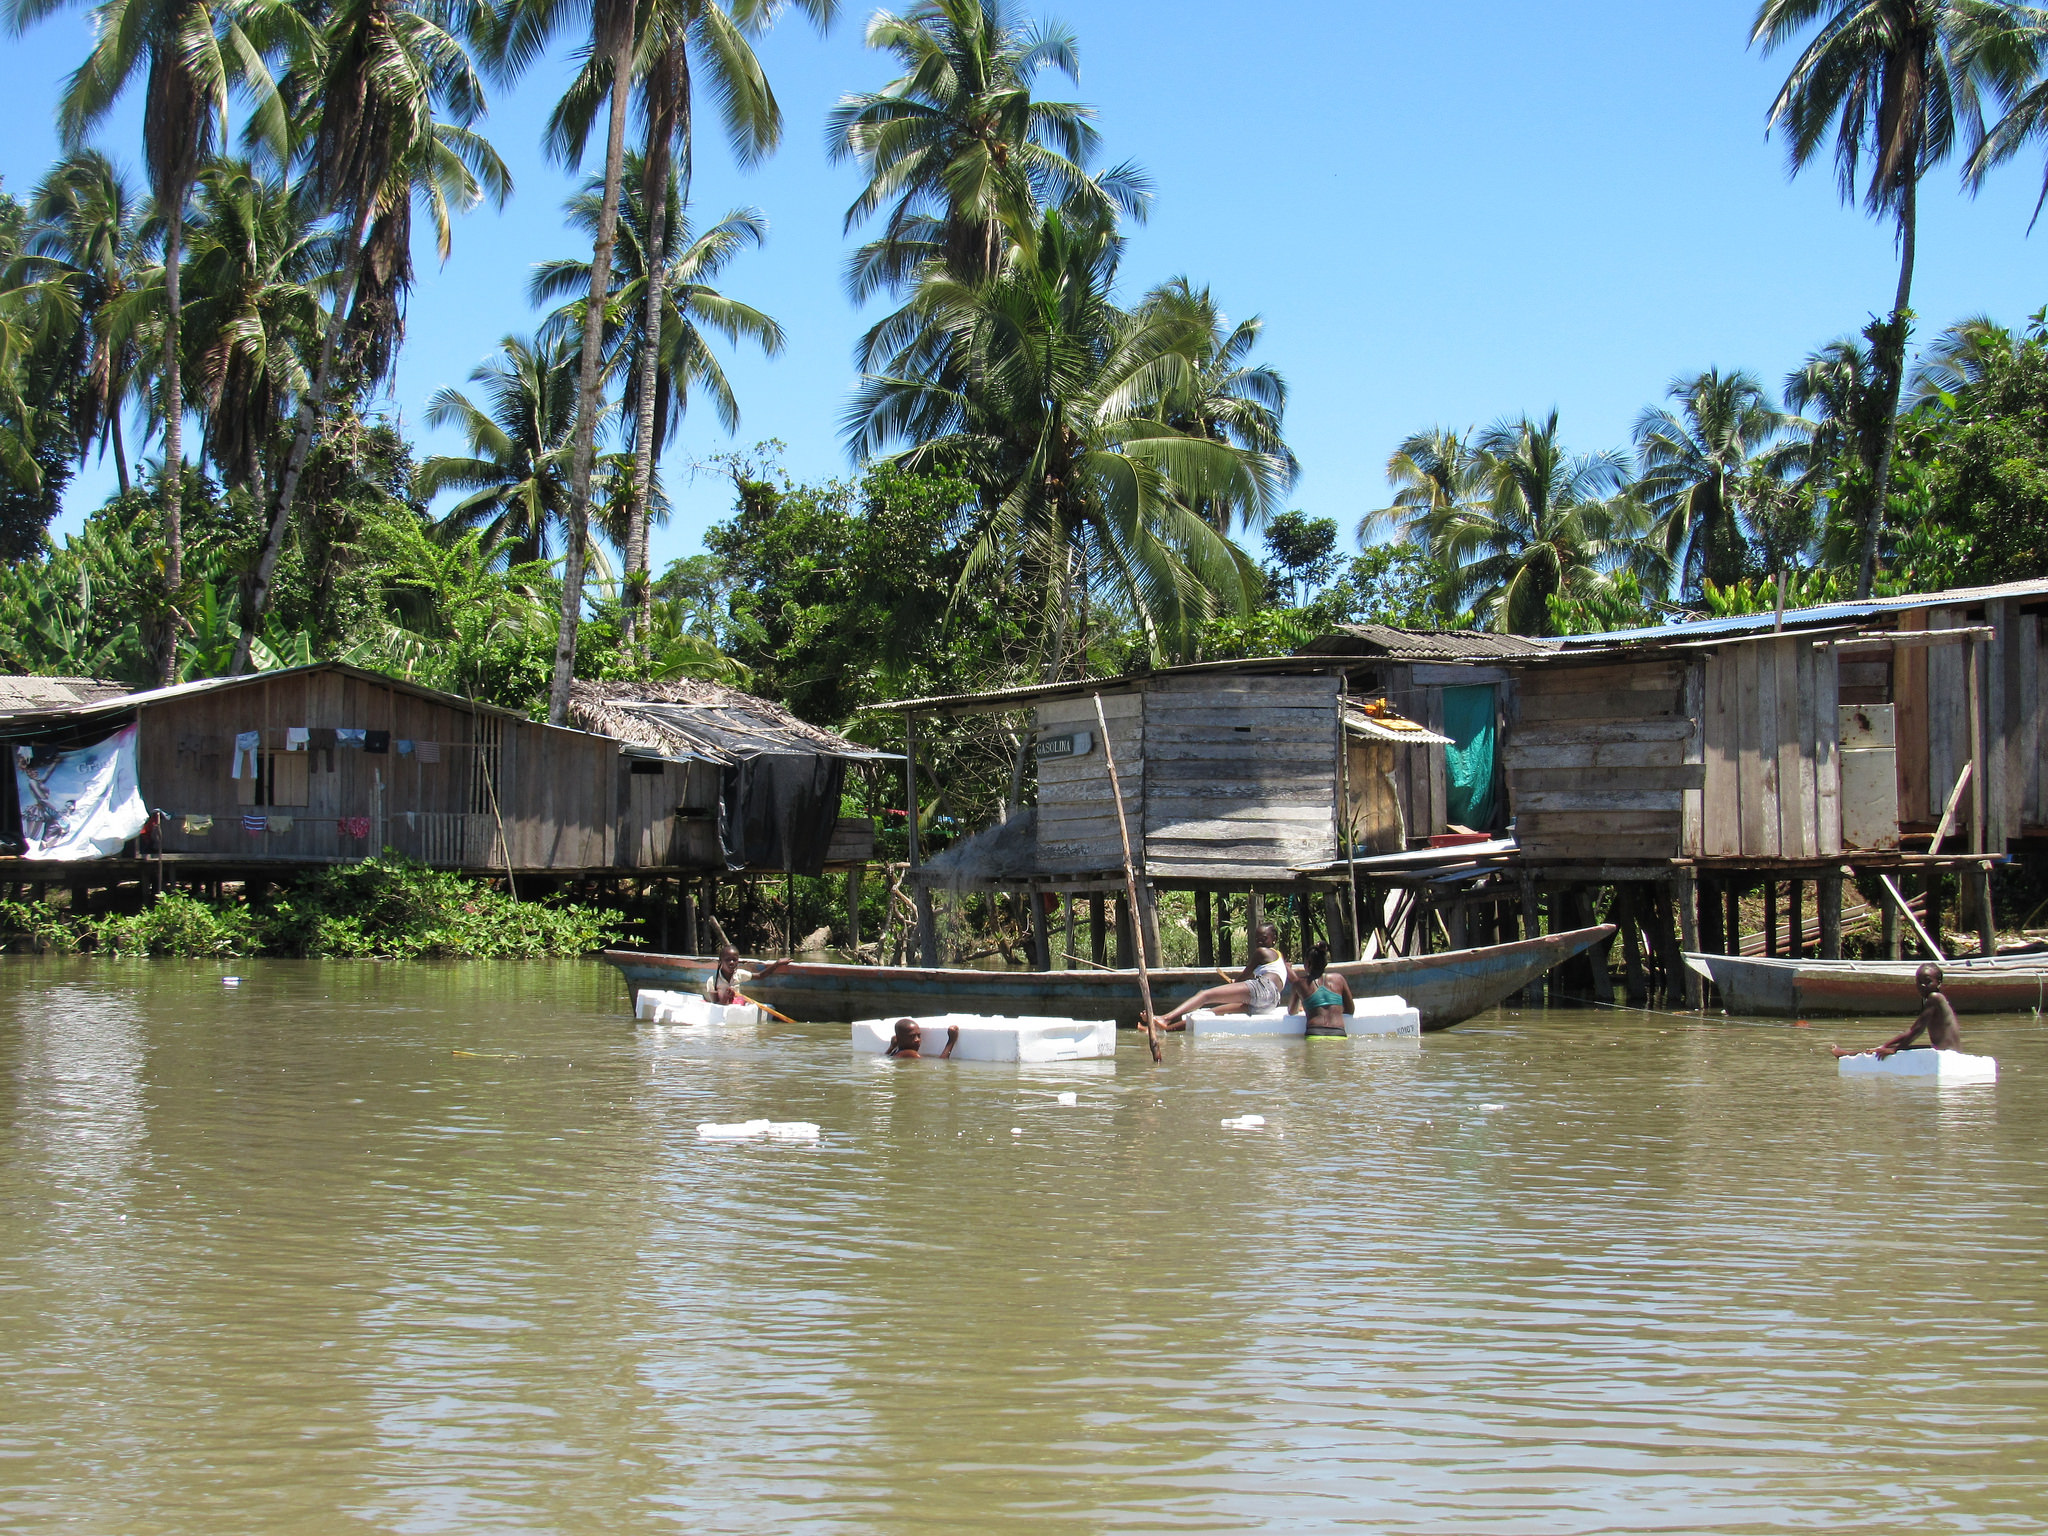 Communities of Rio Naya, Buenaventura